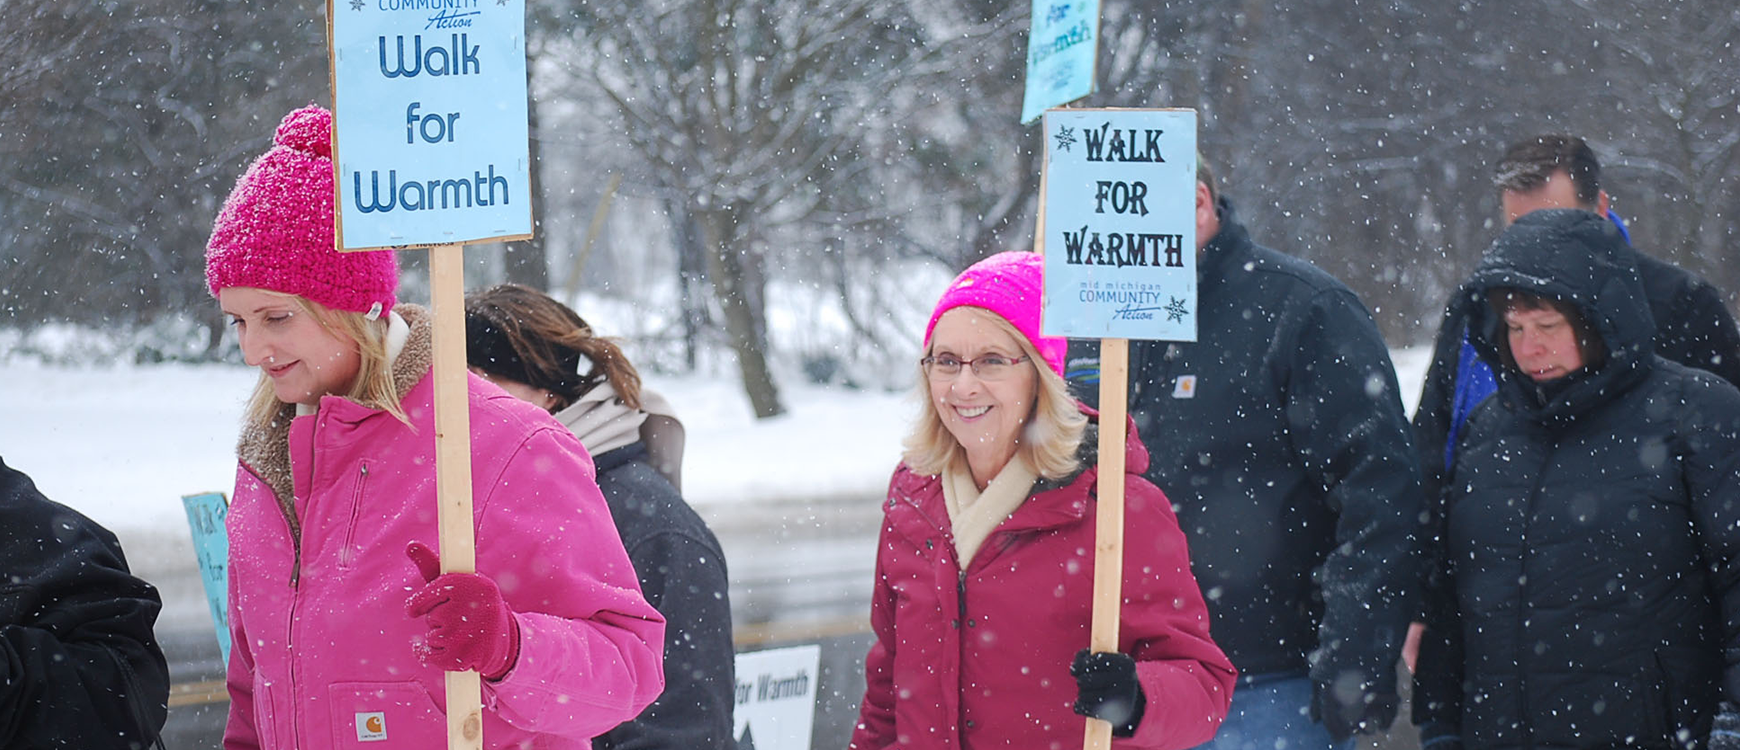 Get involved with Walk for Warmth events and help us heat our communities!